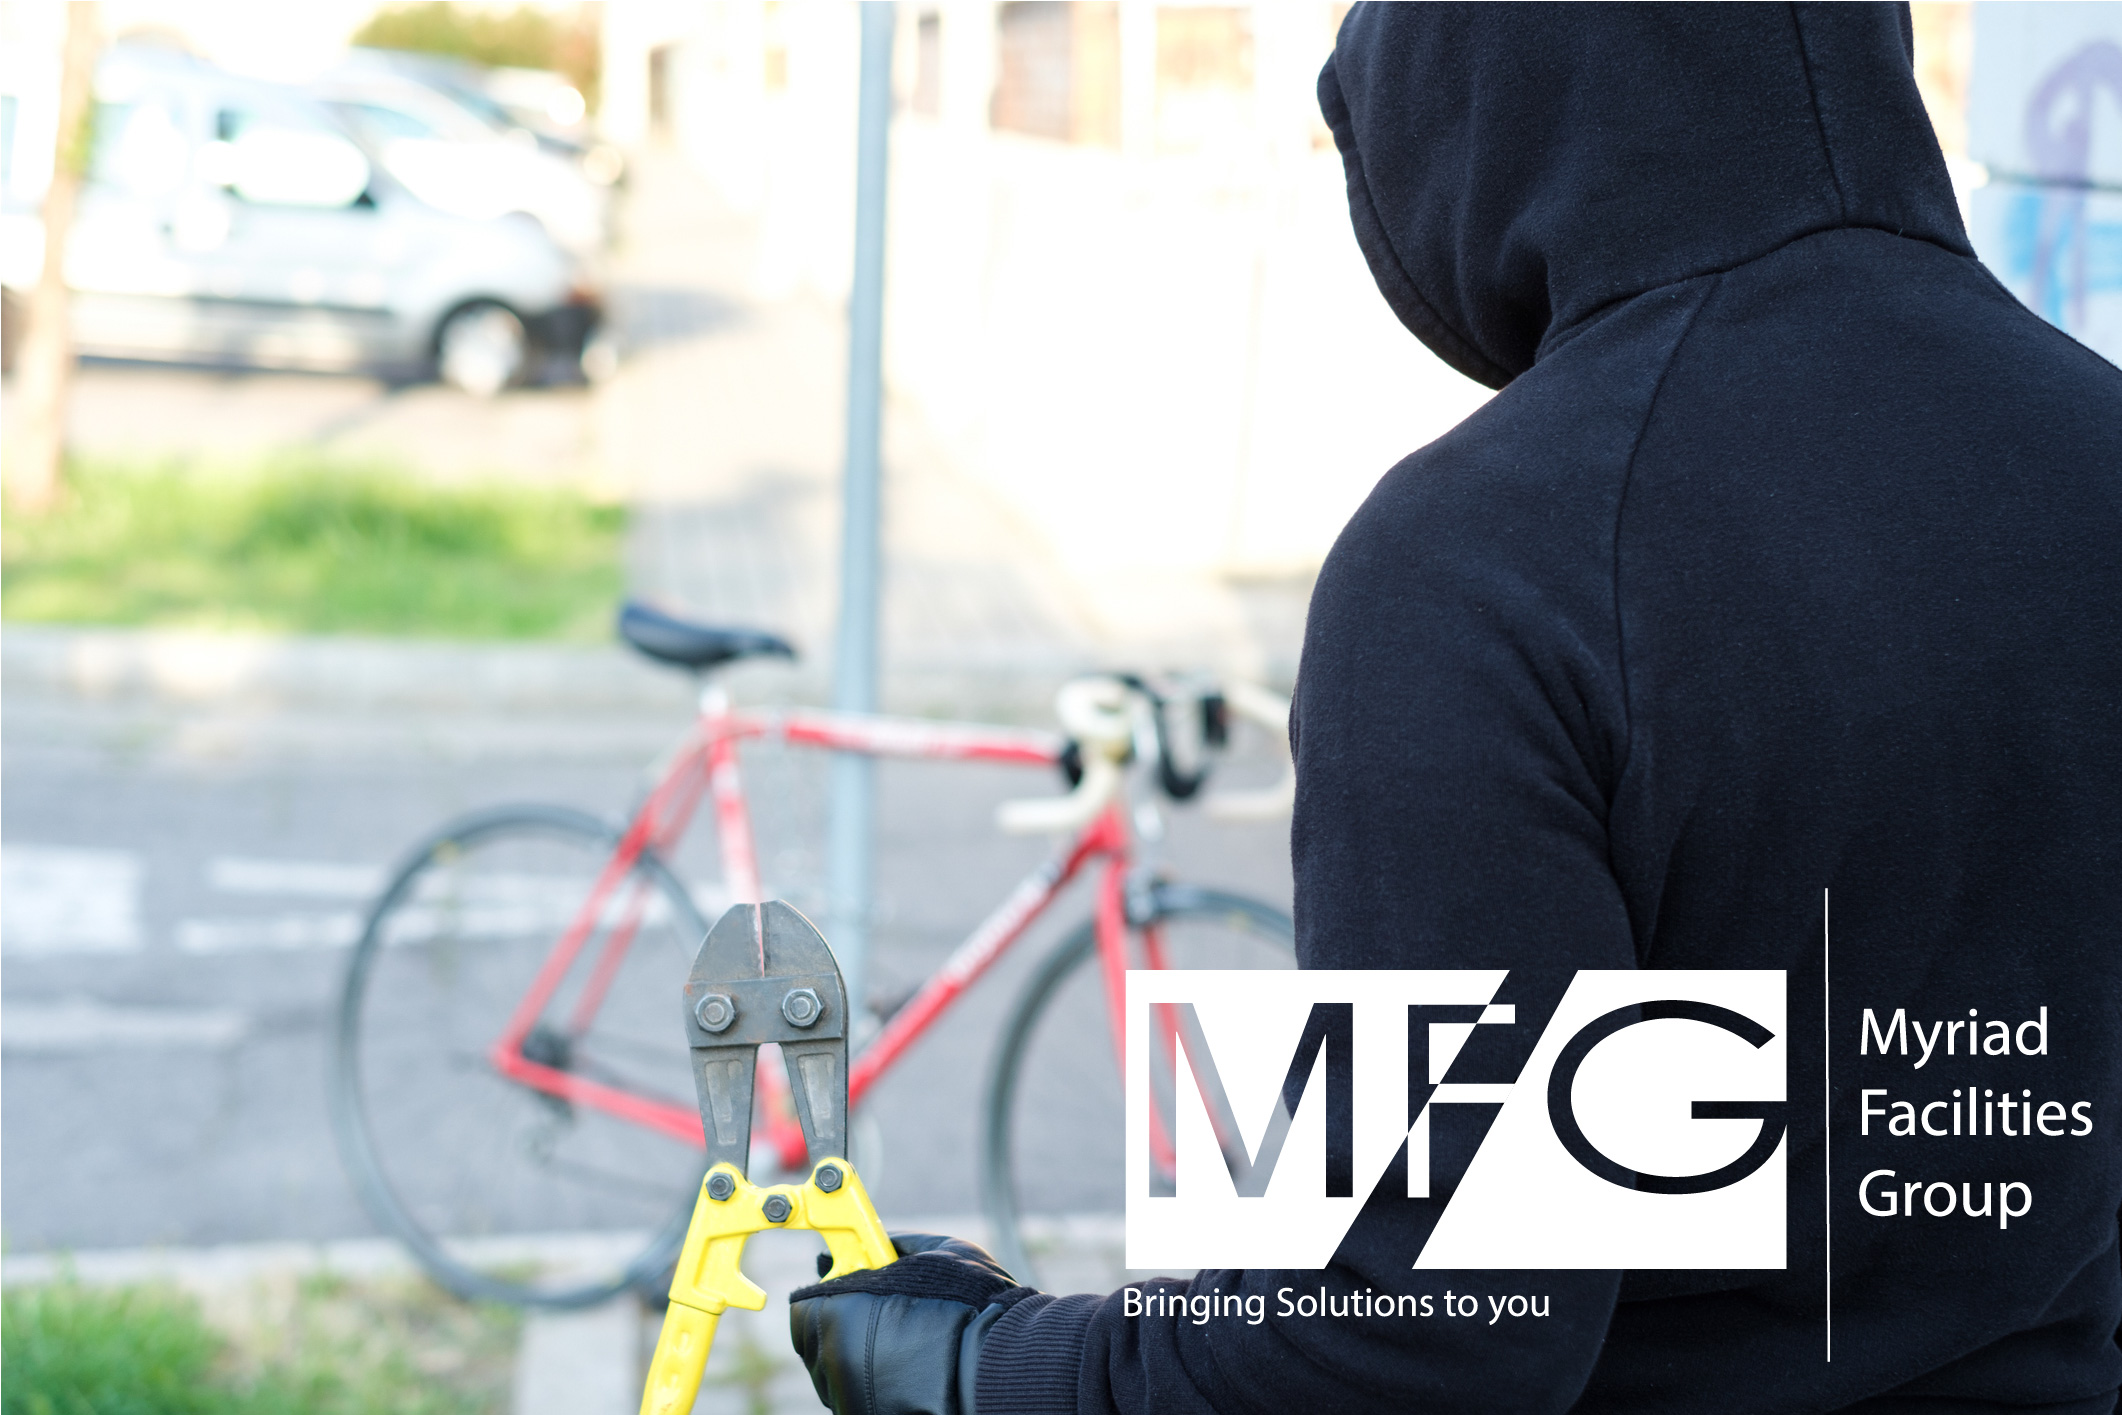 Bike Theft Feature Image